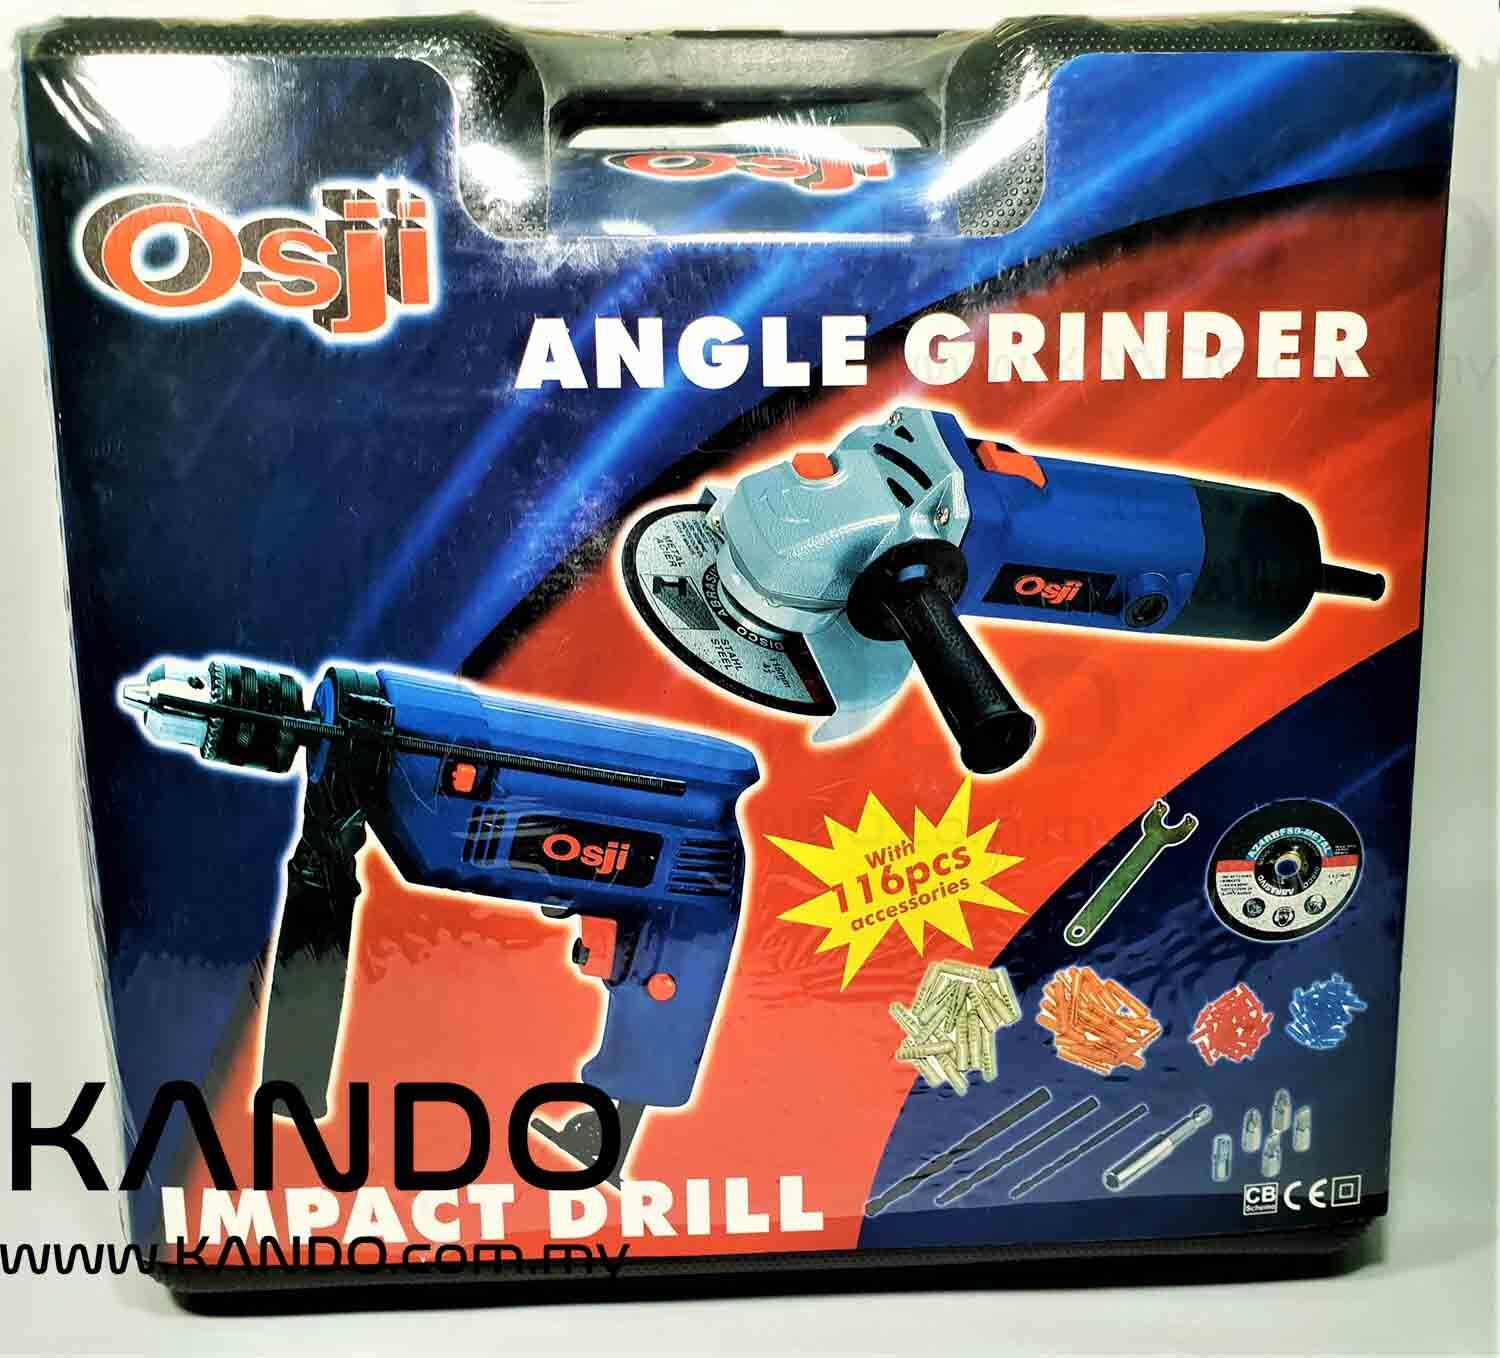 Osji Impact Drill and Angle Grinder 500W with 116 PCS Accessories and Blow Case Set Electric Drill